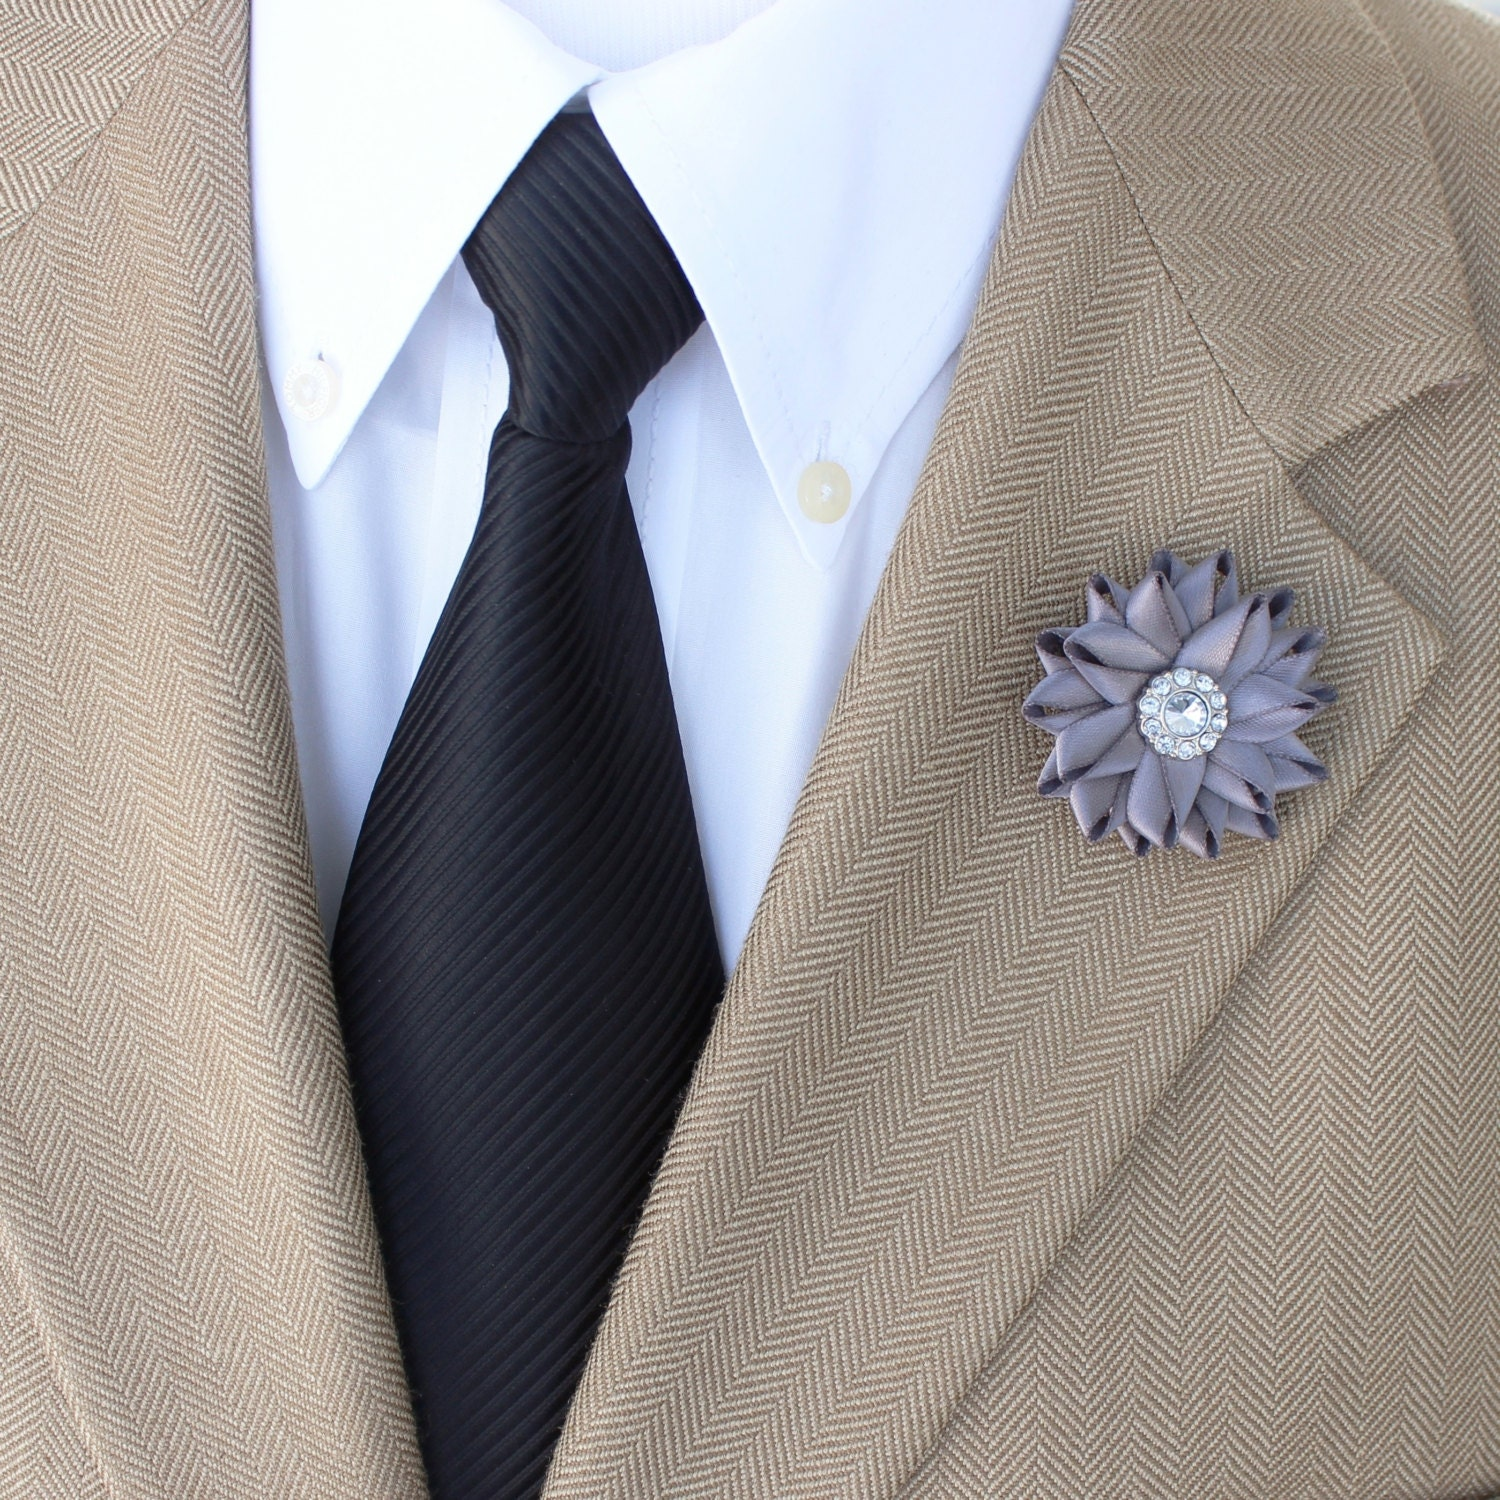 Mens Gifts Lapel Flower Custom Pin Fashion Accessories Gift For Gentleman Flowers Men